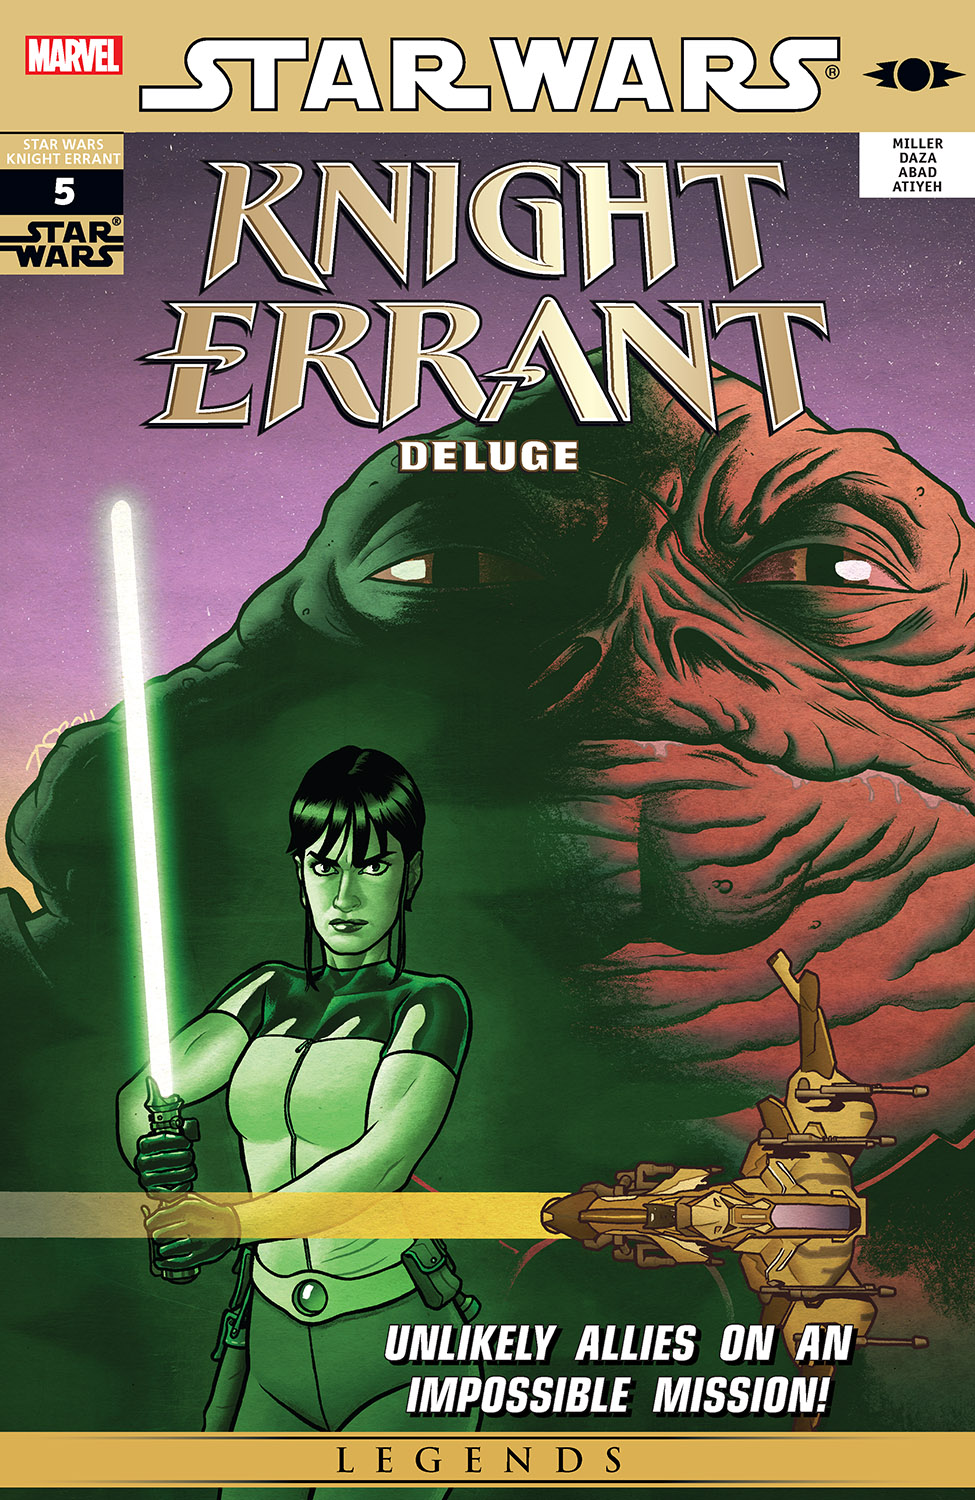 STAR WAS KNIGHT ERRANT: DELUGE (MS 5)